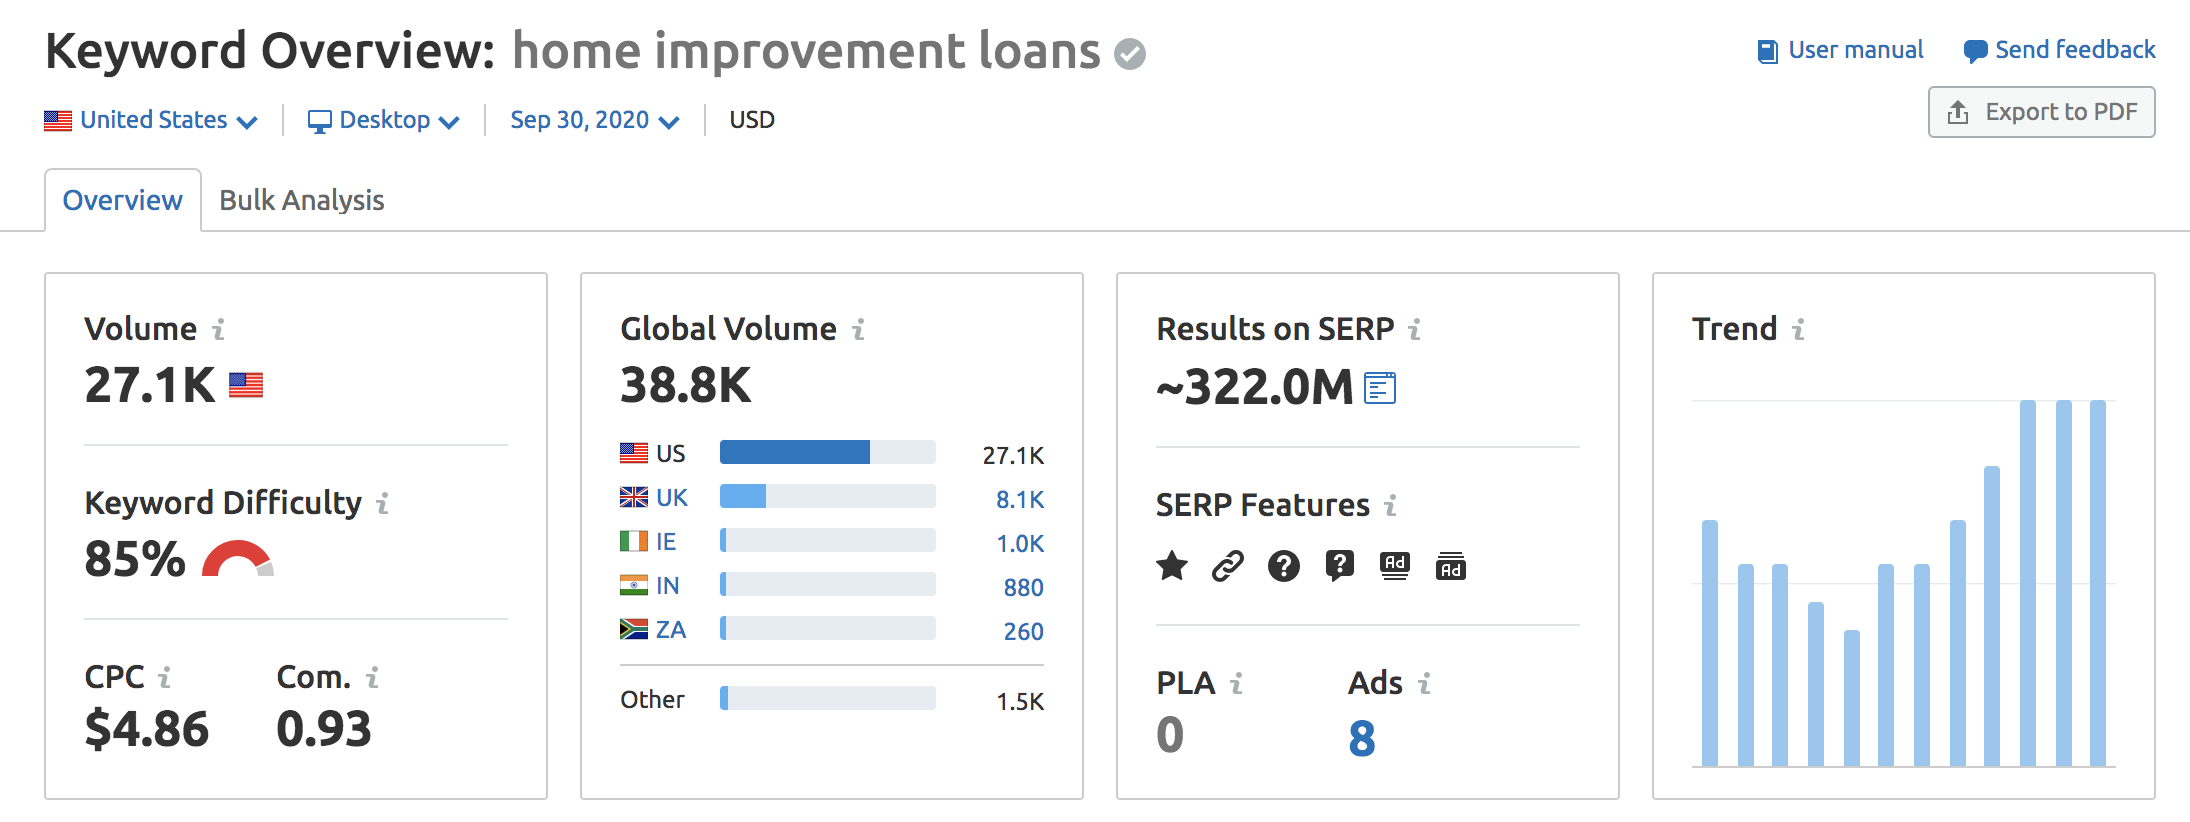 Home improvement loans keyword volume screenshot